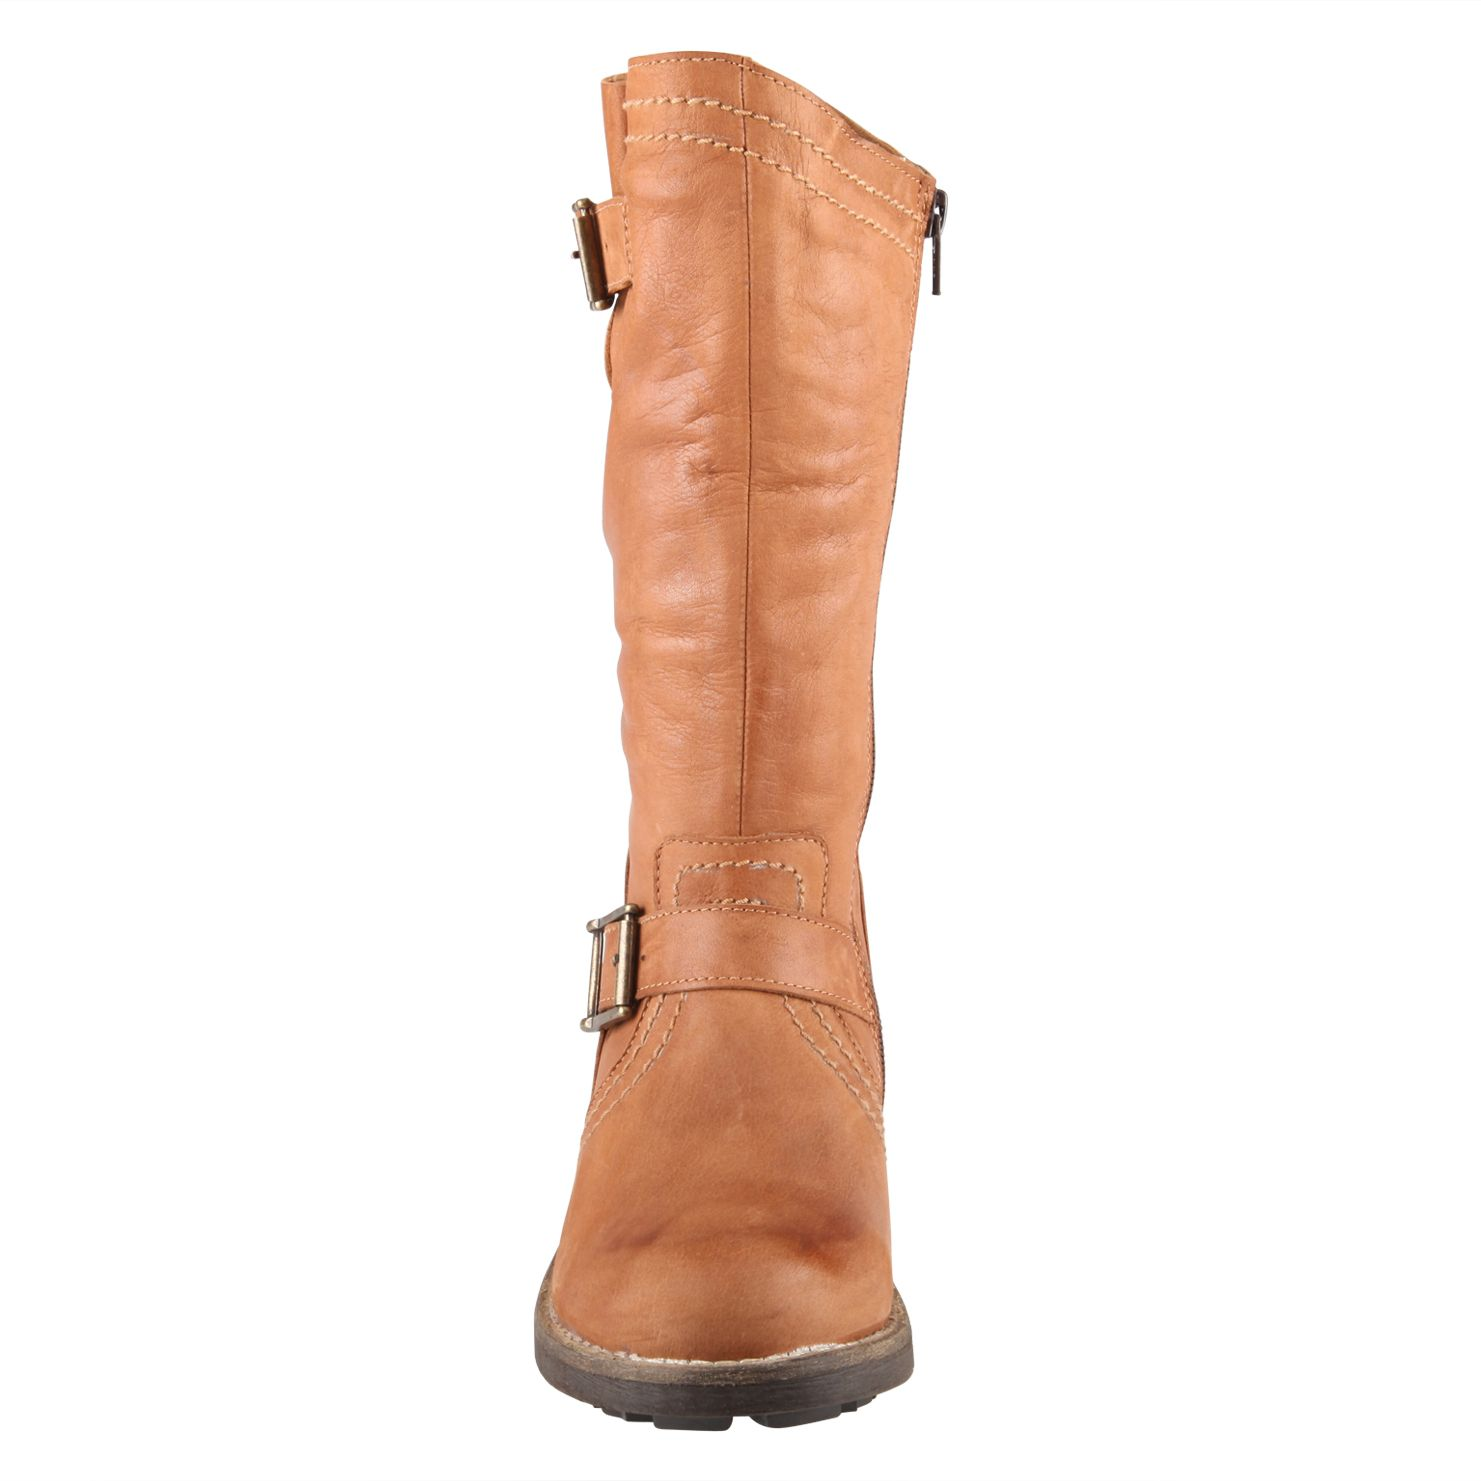 Billingsa metal detail calf boots